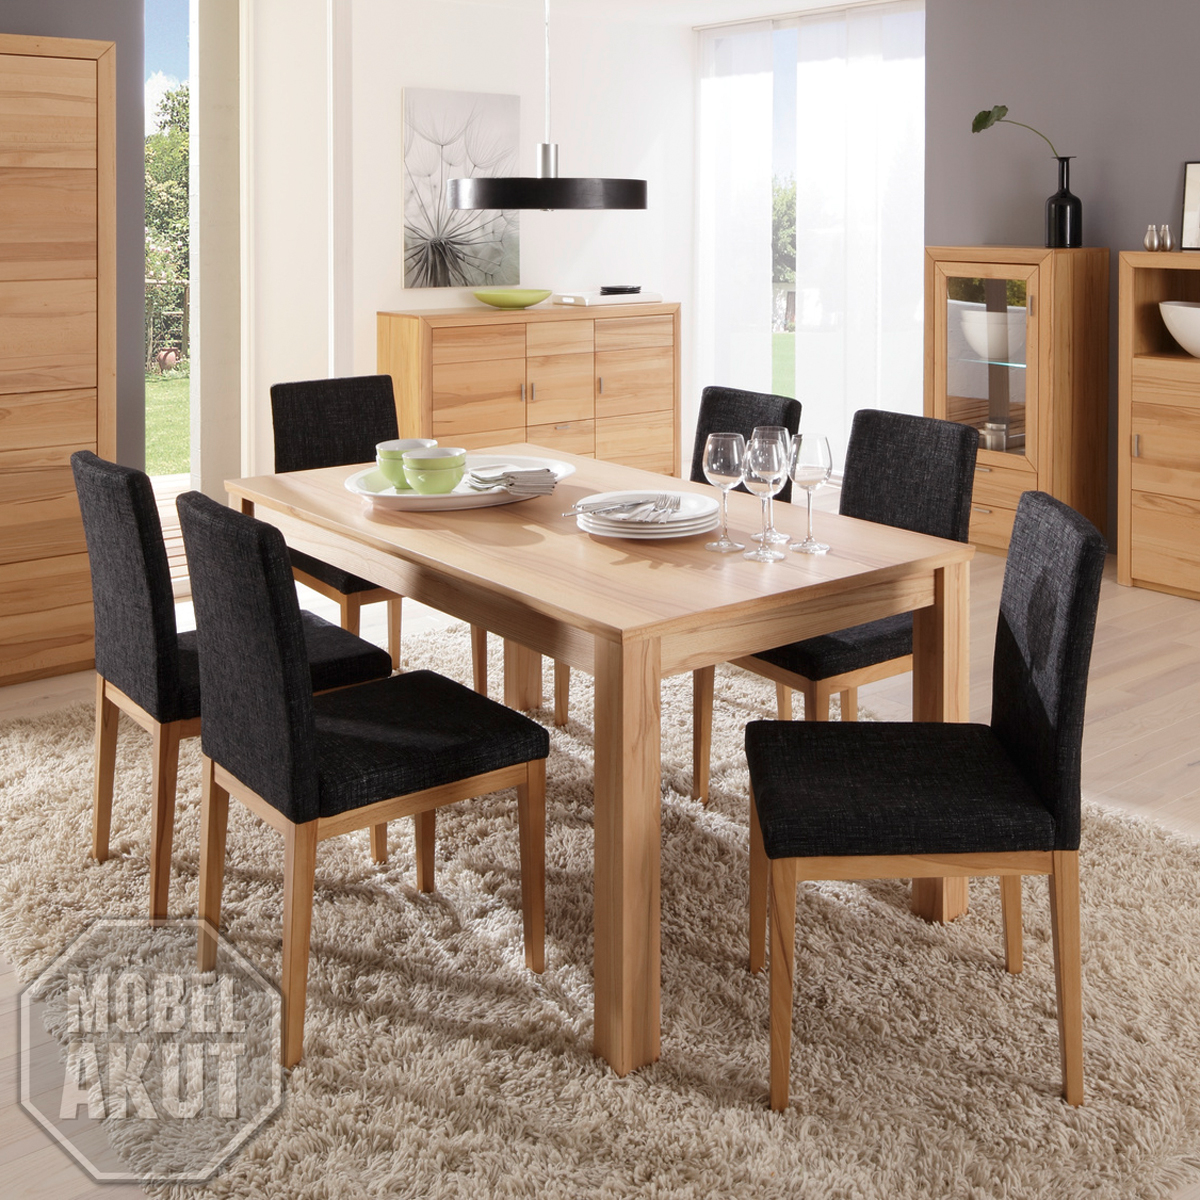 esstisch passepartout t14 tisch in kernbuche massiv ausziehbar 140 190x90 ebay. Black Bedroom Furniture Sets. Home Design Ideas